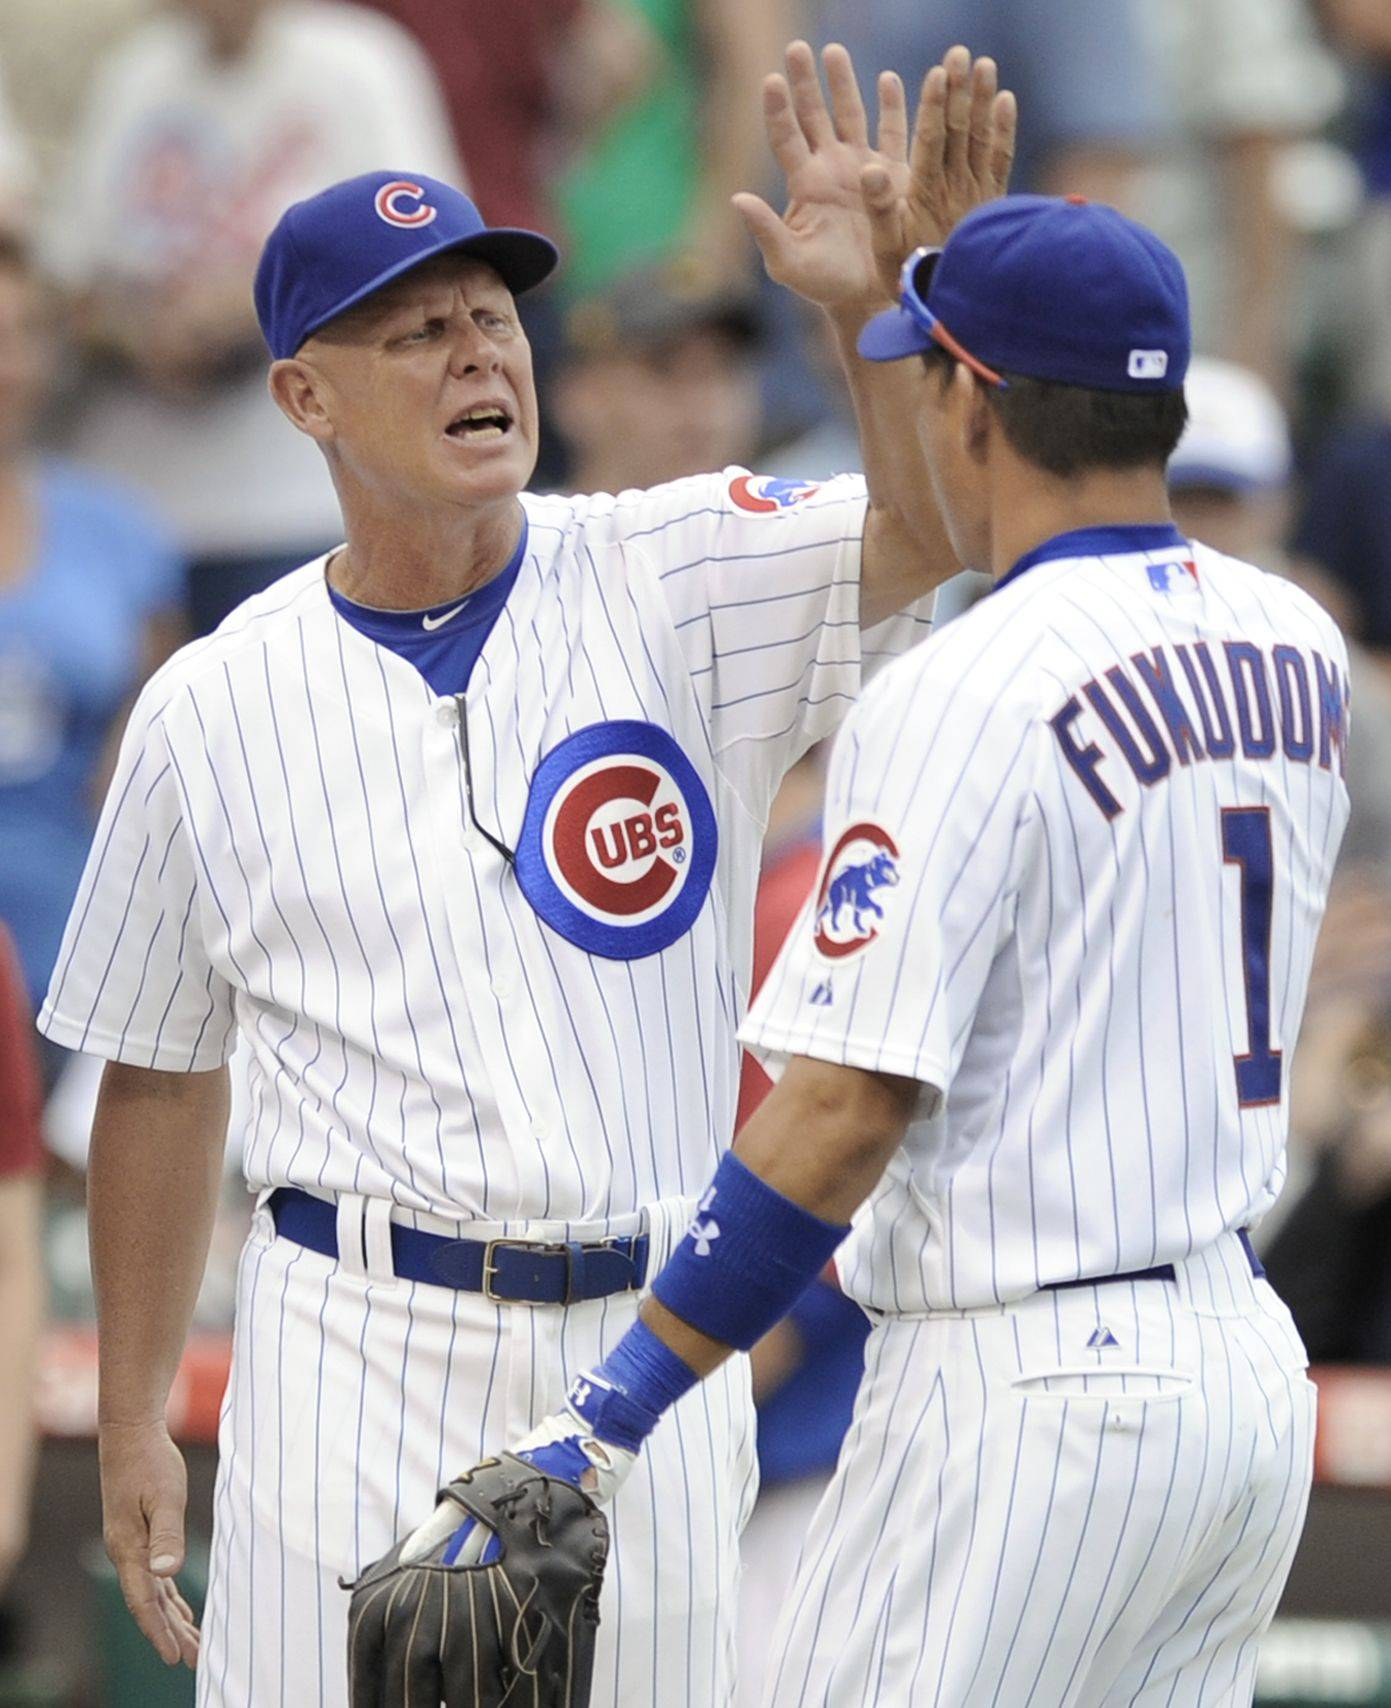 Chicago Cubs manager Mike Quade left, high-fives Kosuke Fukudome after the Cubs defeated the Pittsburgh Pirates 5-3 in a baseball game in Chicago.